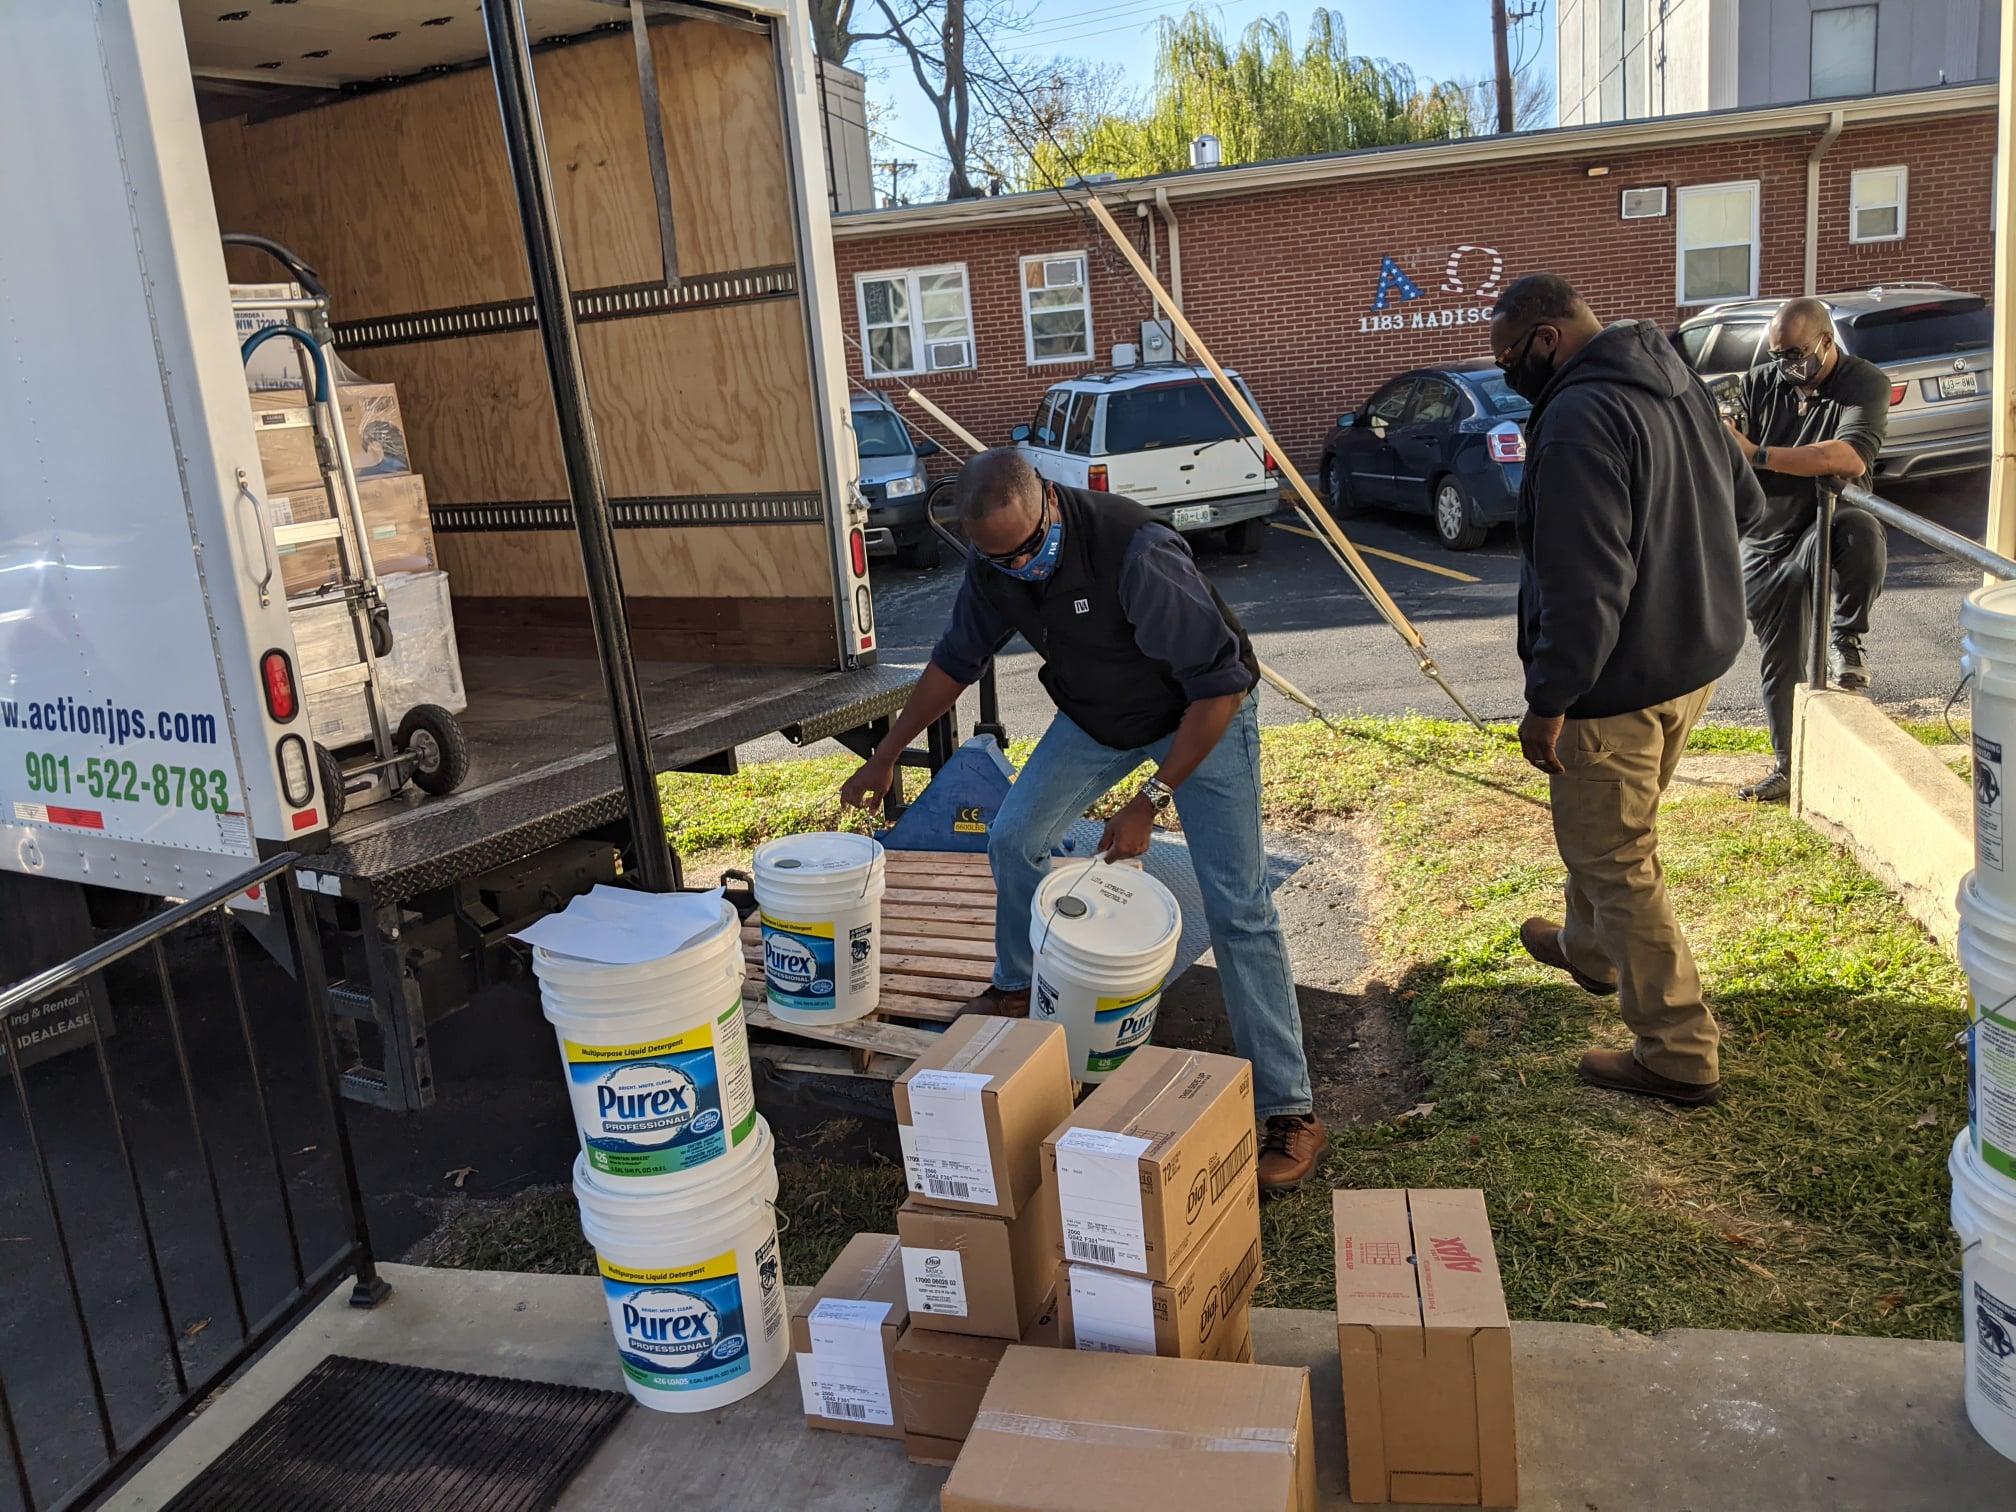 delivering supplies to veterans in need